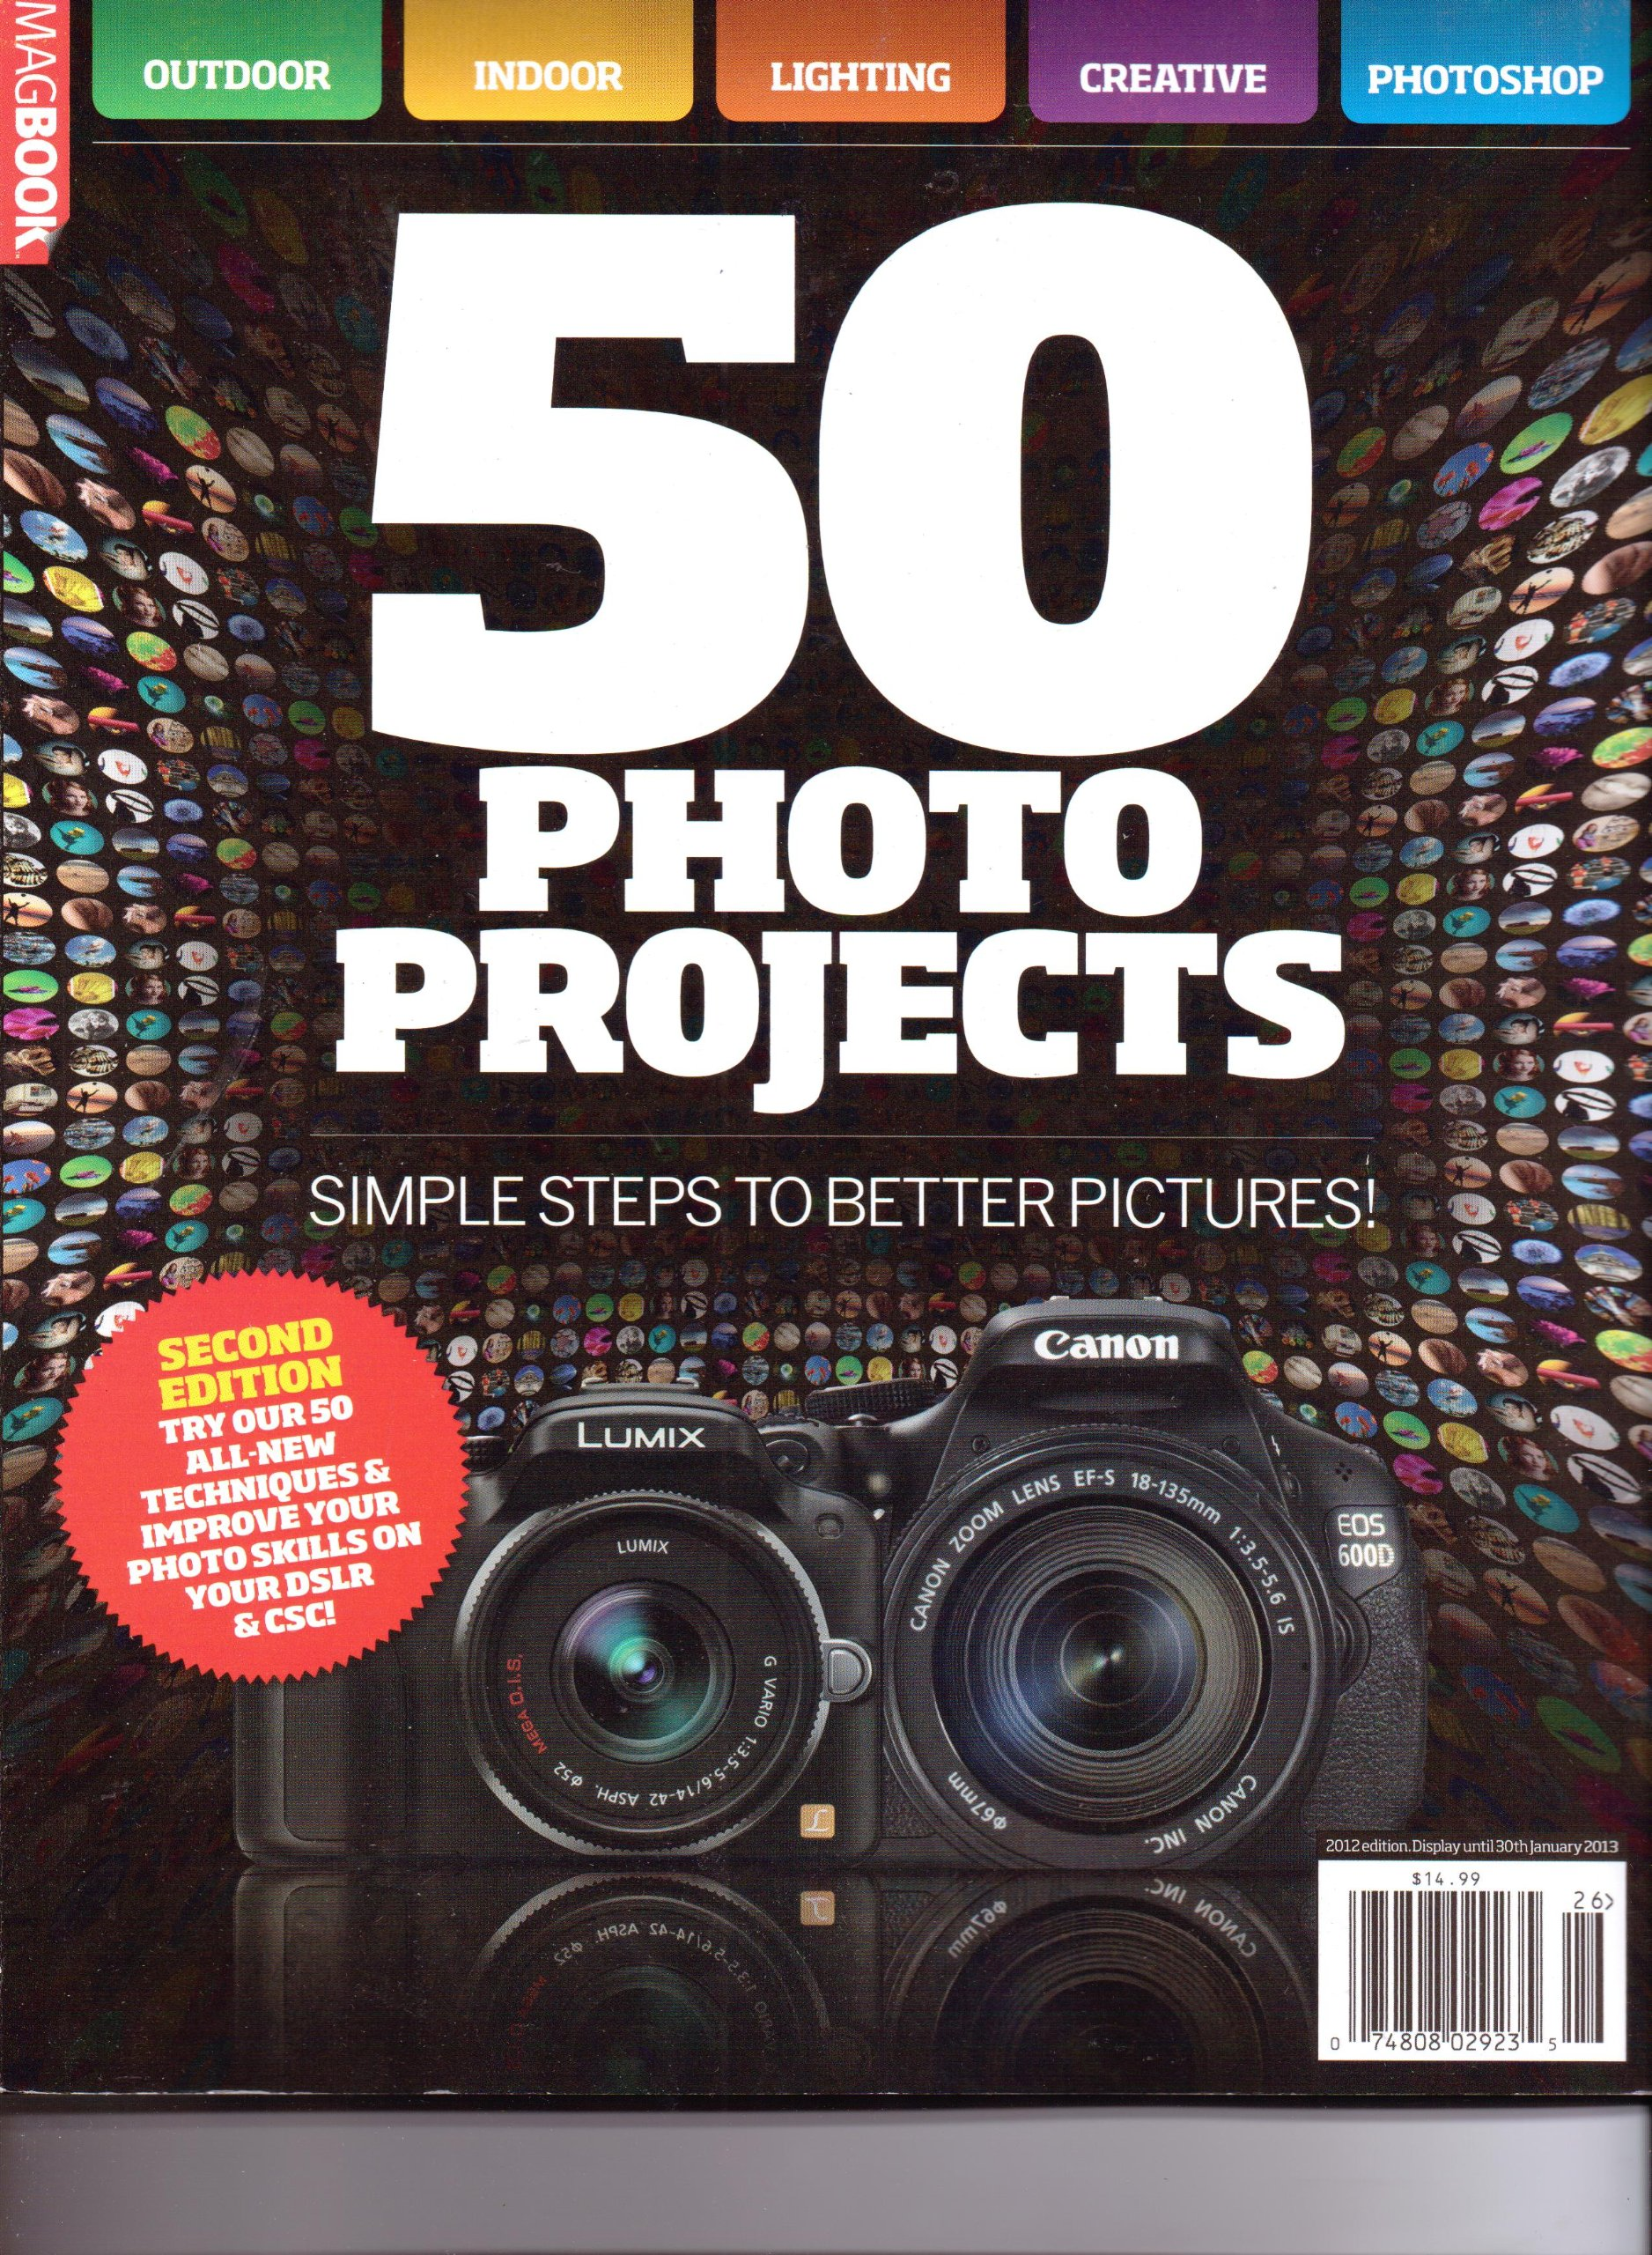 50 PHOTO PROJECTS MagBook. Simple Steps To Better Pictures. 2nd Edition 2012. pdf